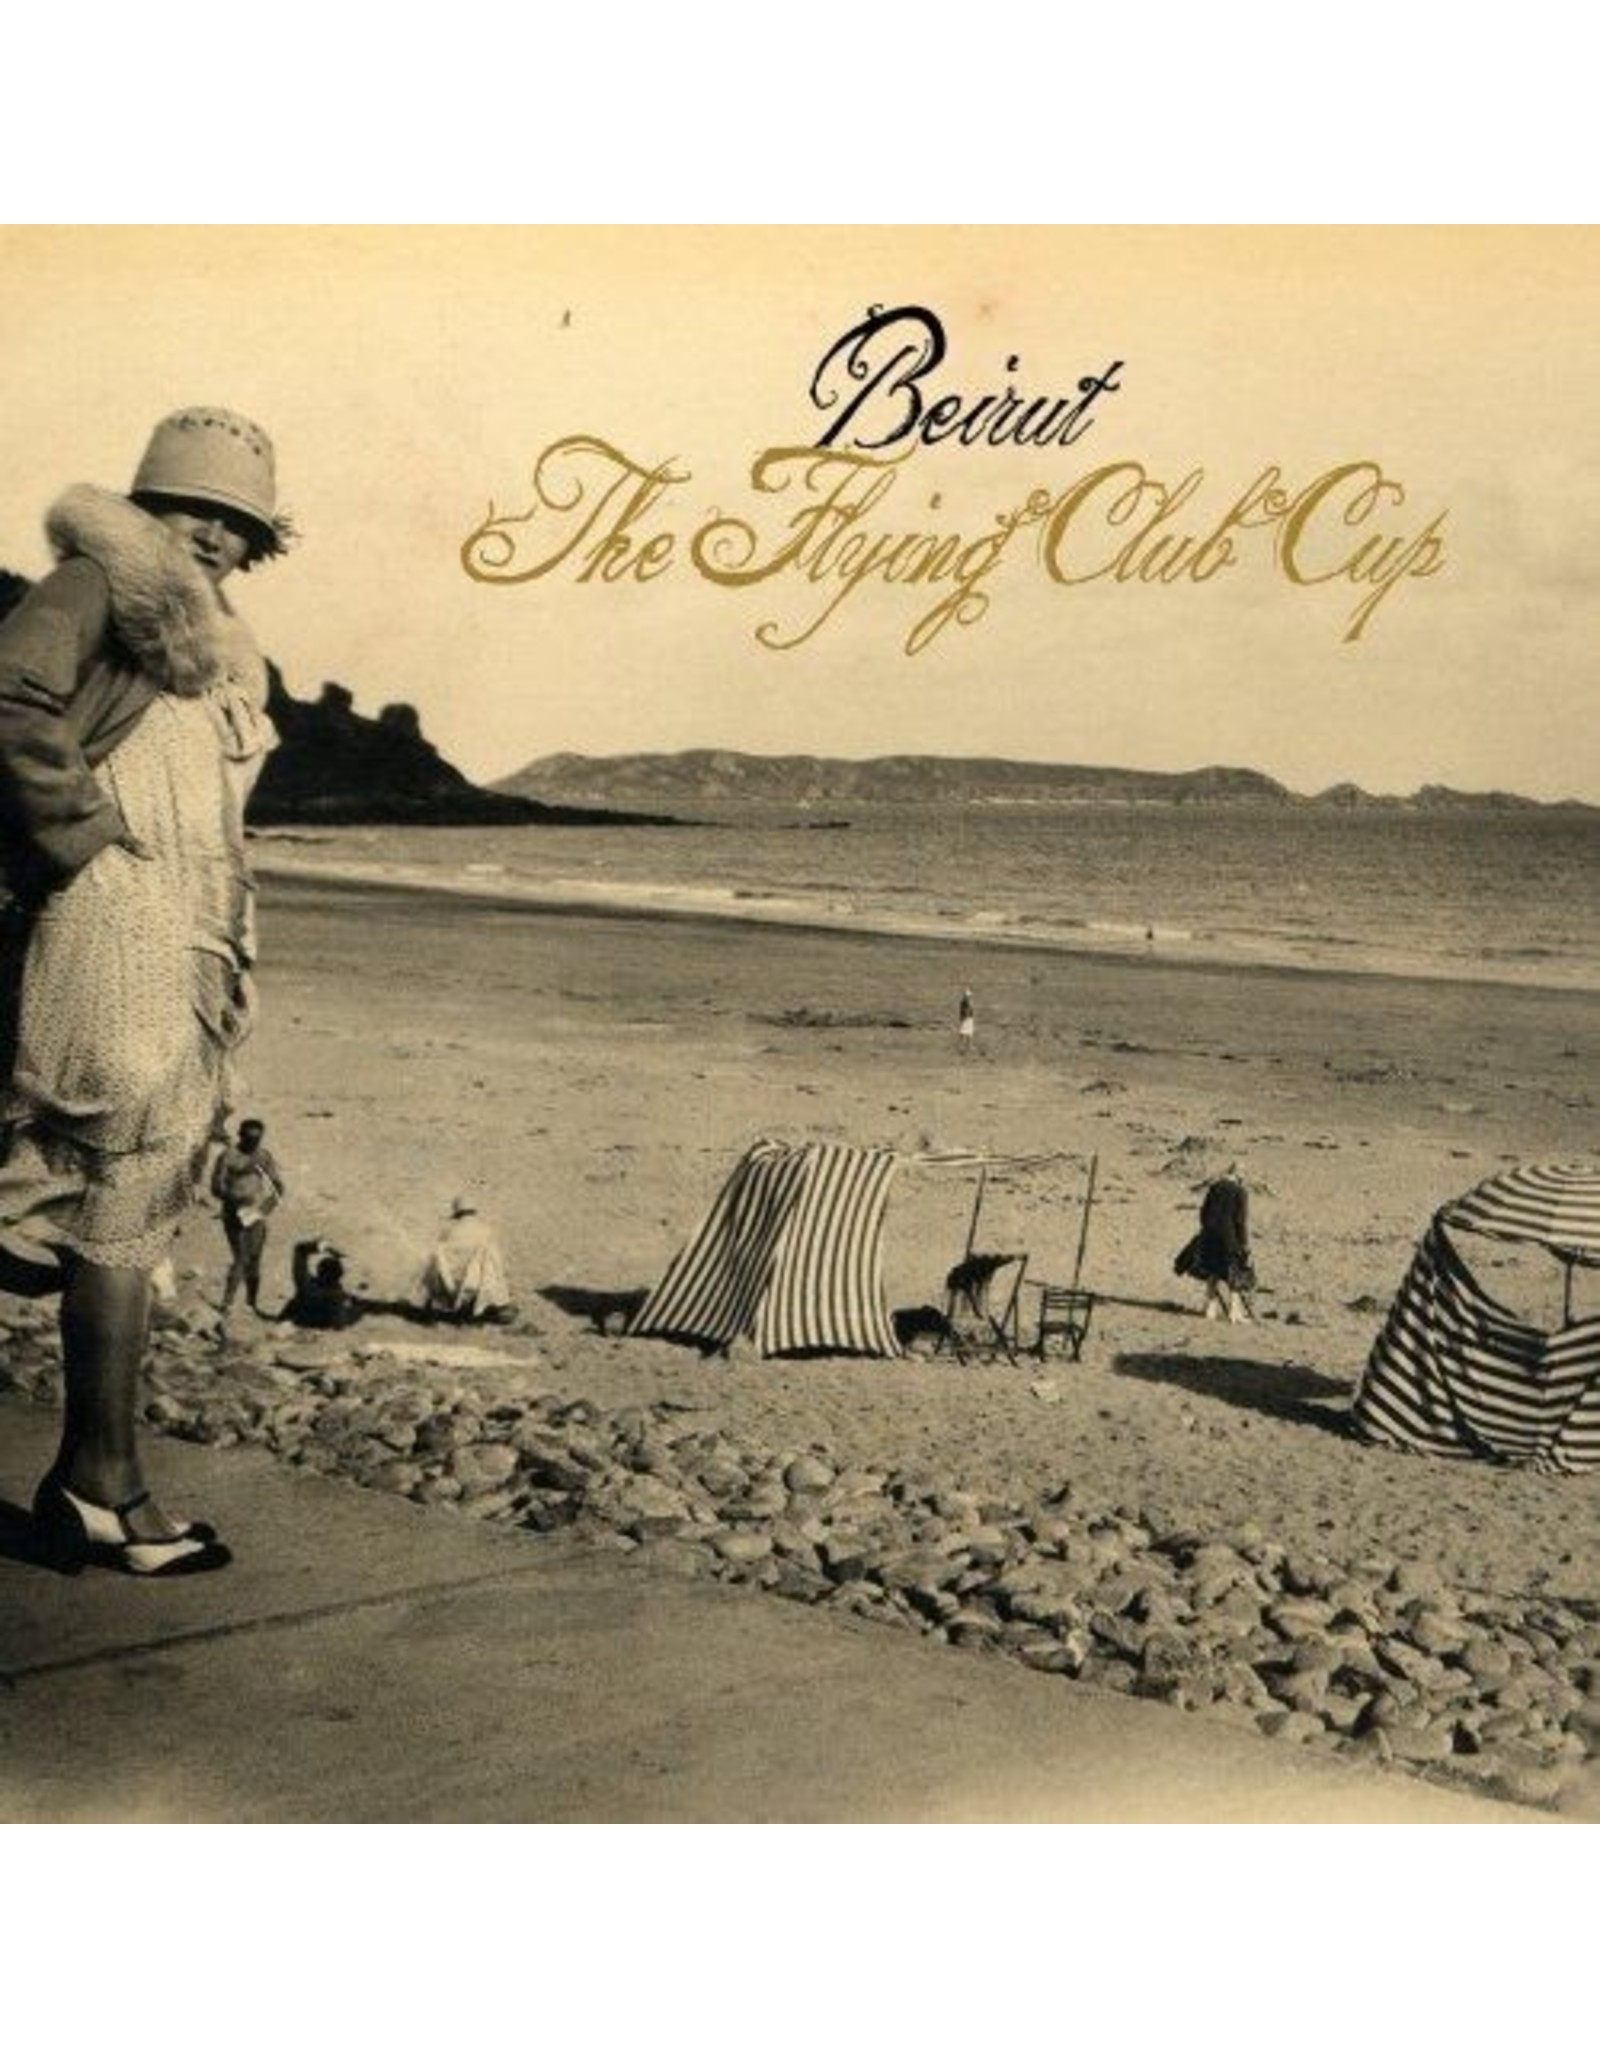 New Vinyl Beirut - The Flying Club Cup LP